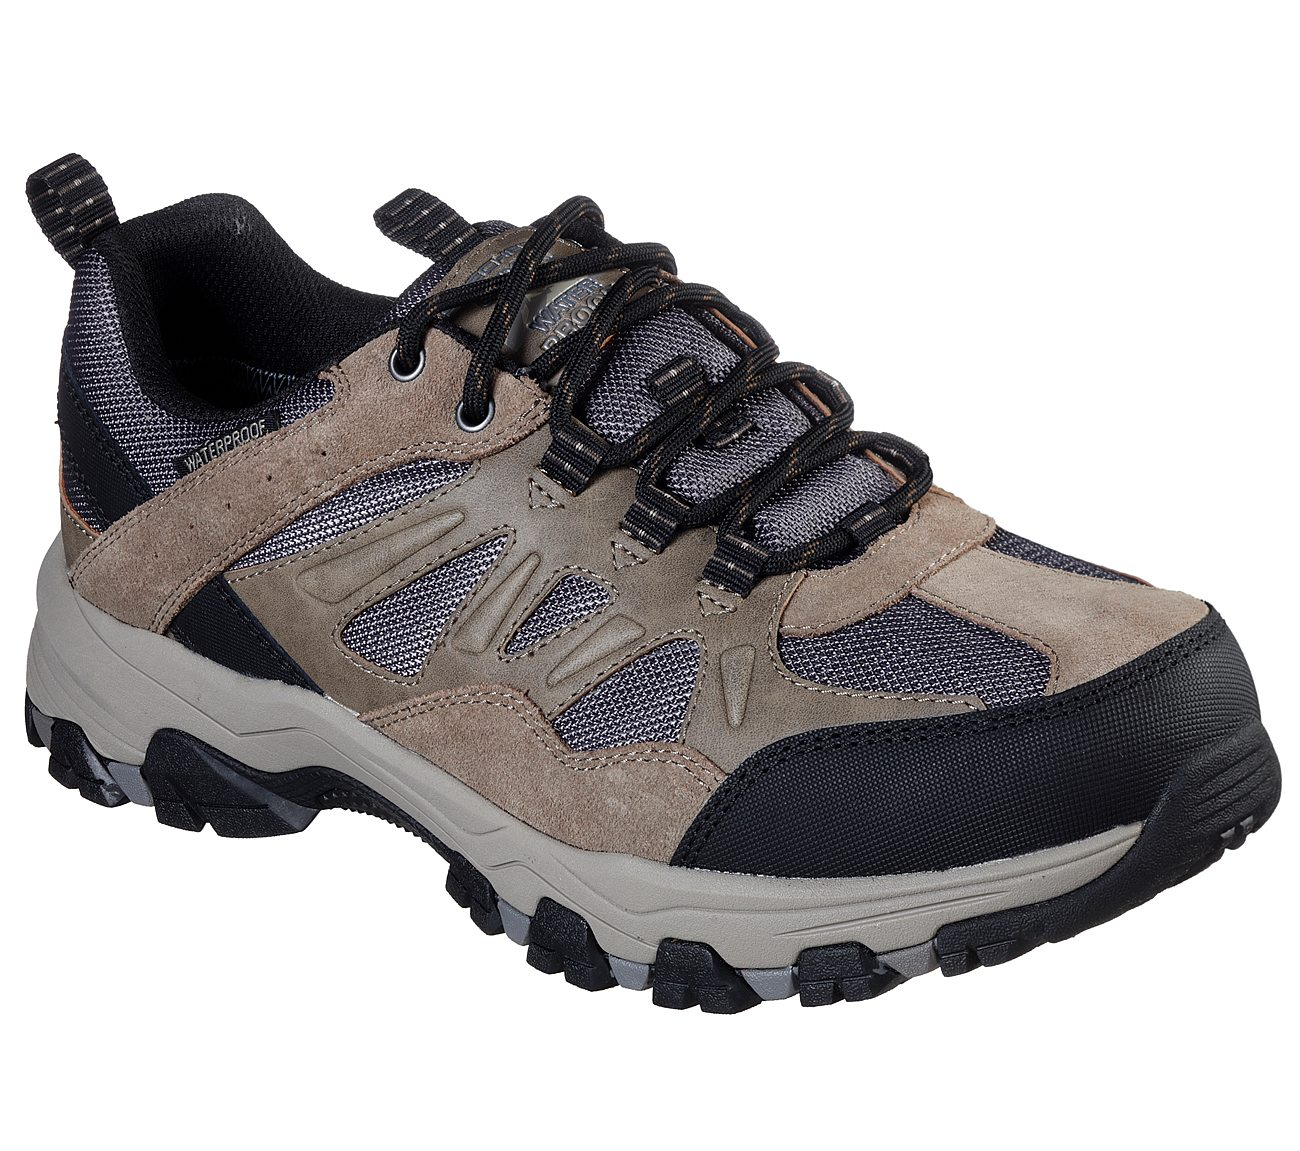 Buy SKECHERS Relaxed Fit: Selmen Enago Relaxed Fit Shoes fhFrI